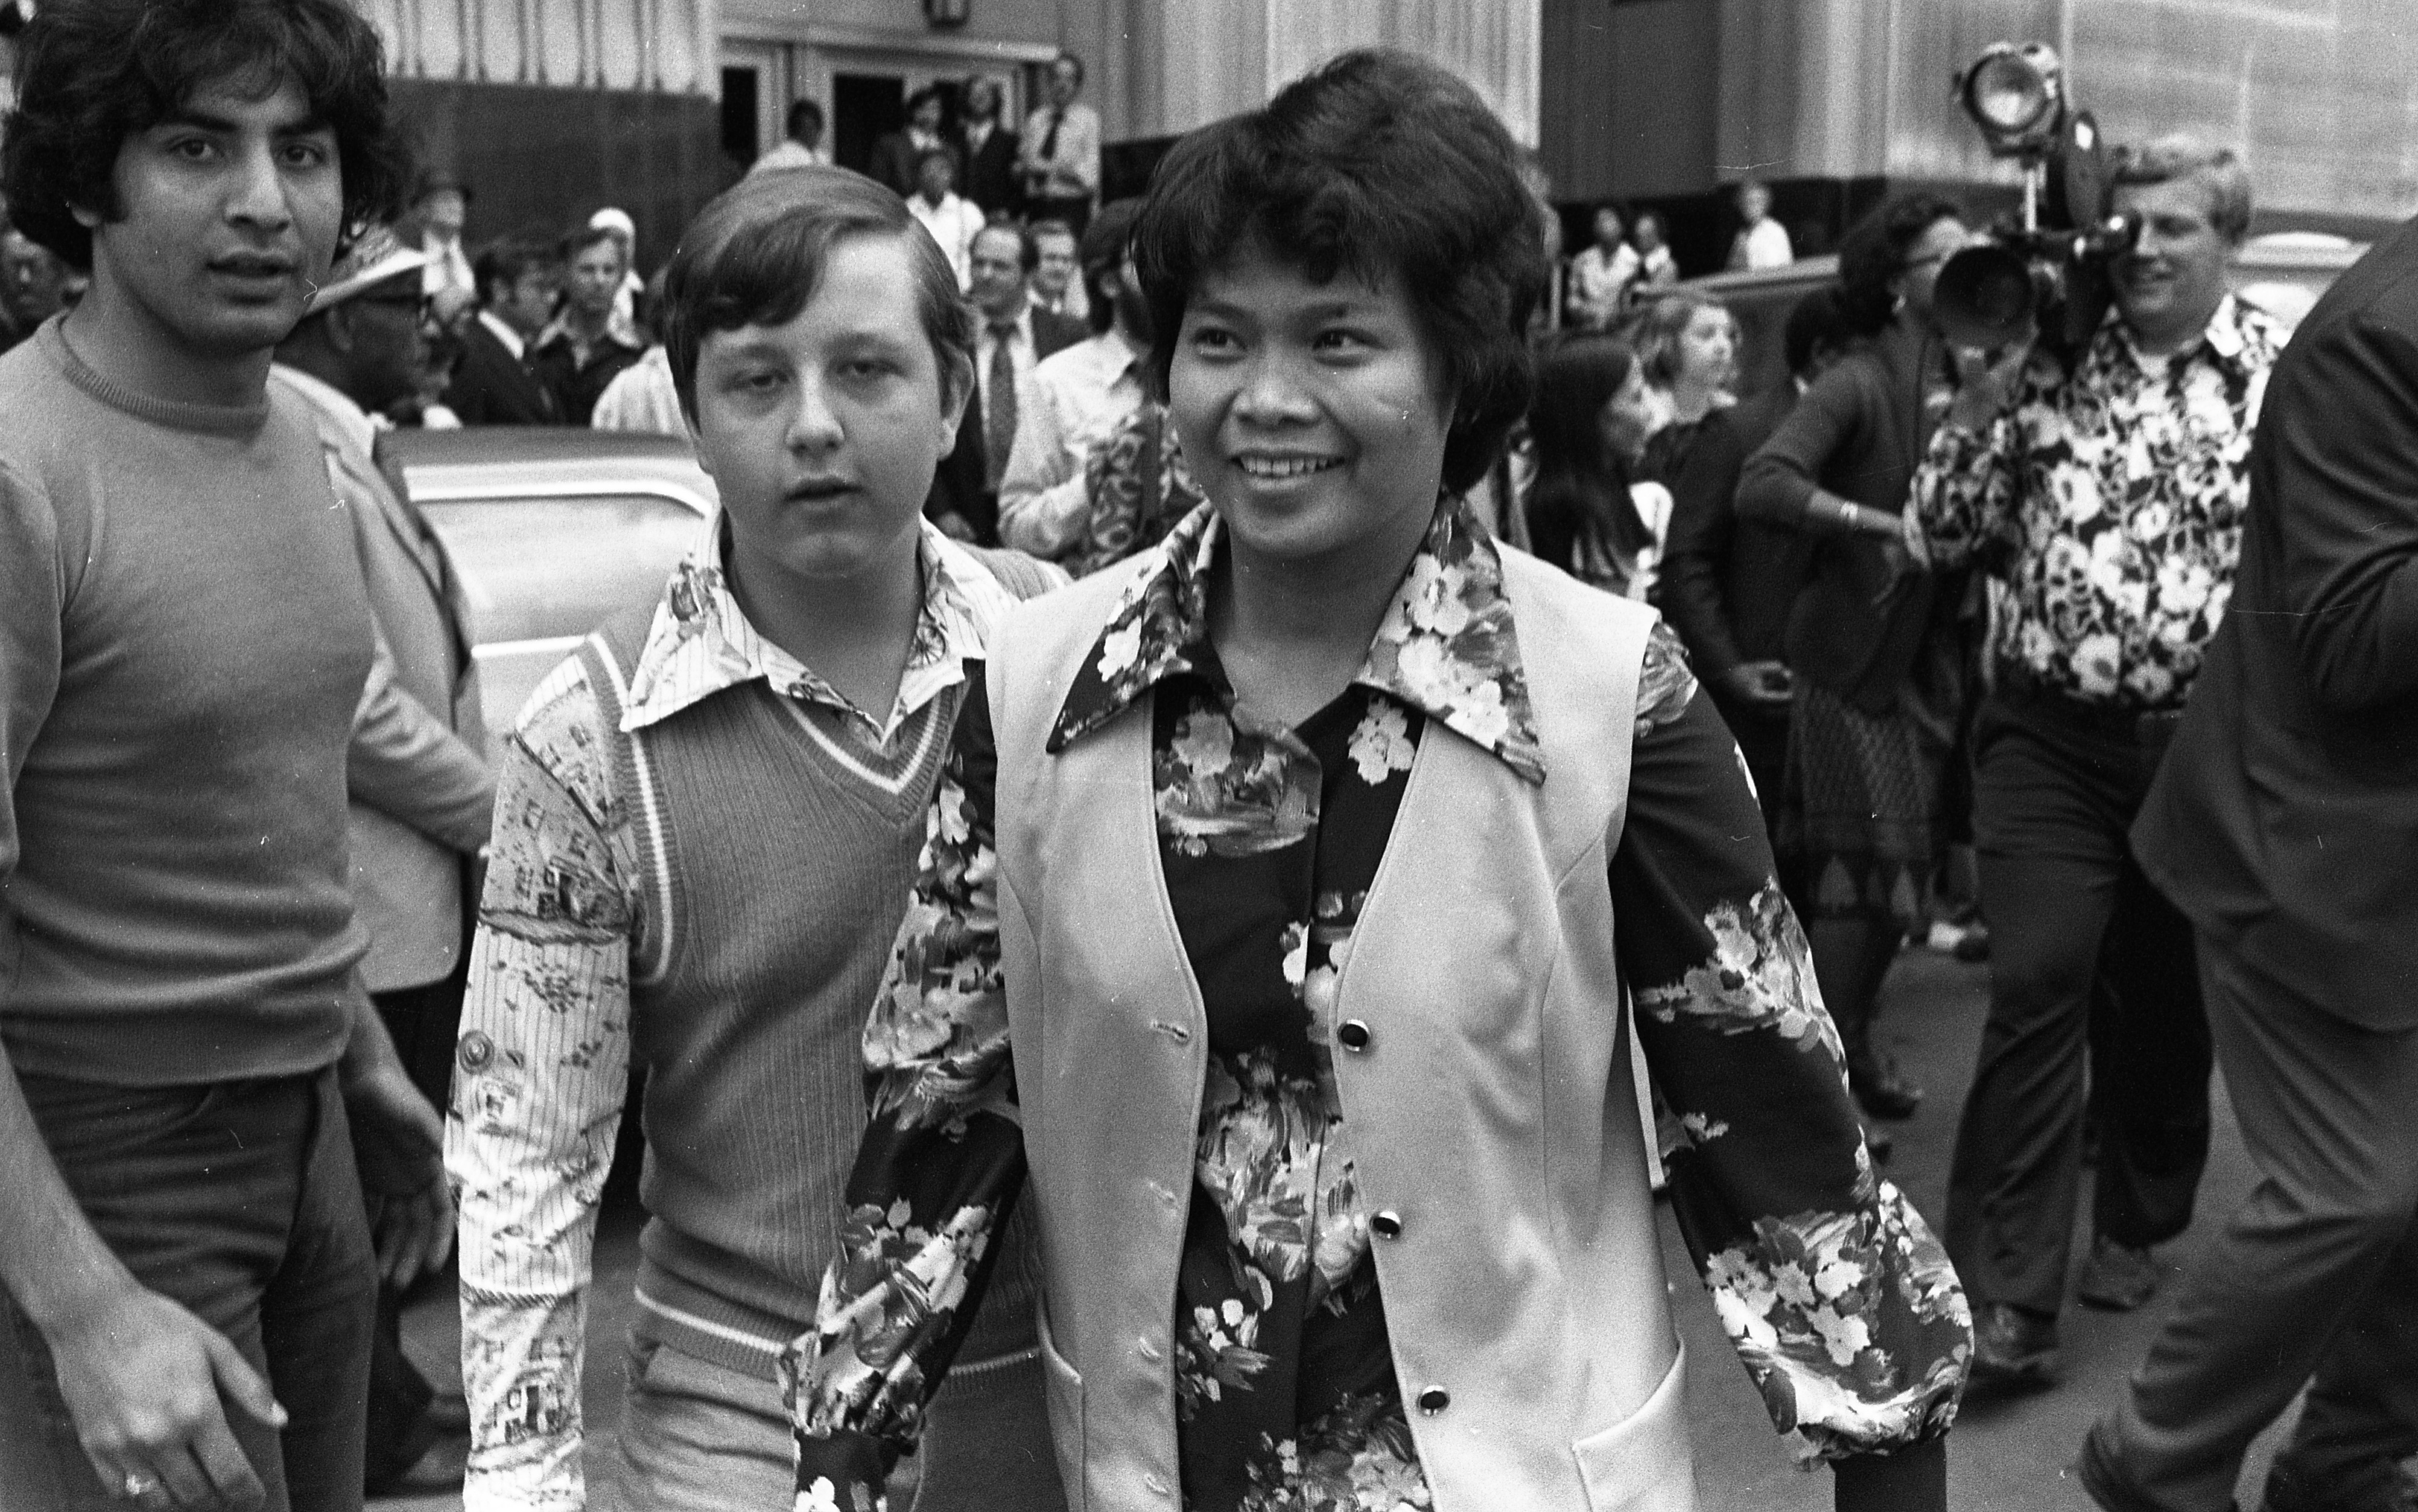 Filipina B. Narciso Leaving The Federal Building In Detroit With Todd Branham, After Preliminary VA Hearings, July 1976 image